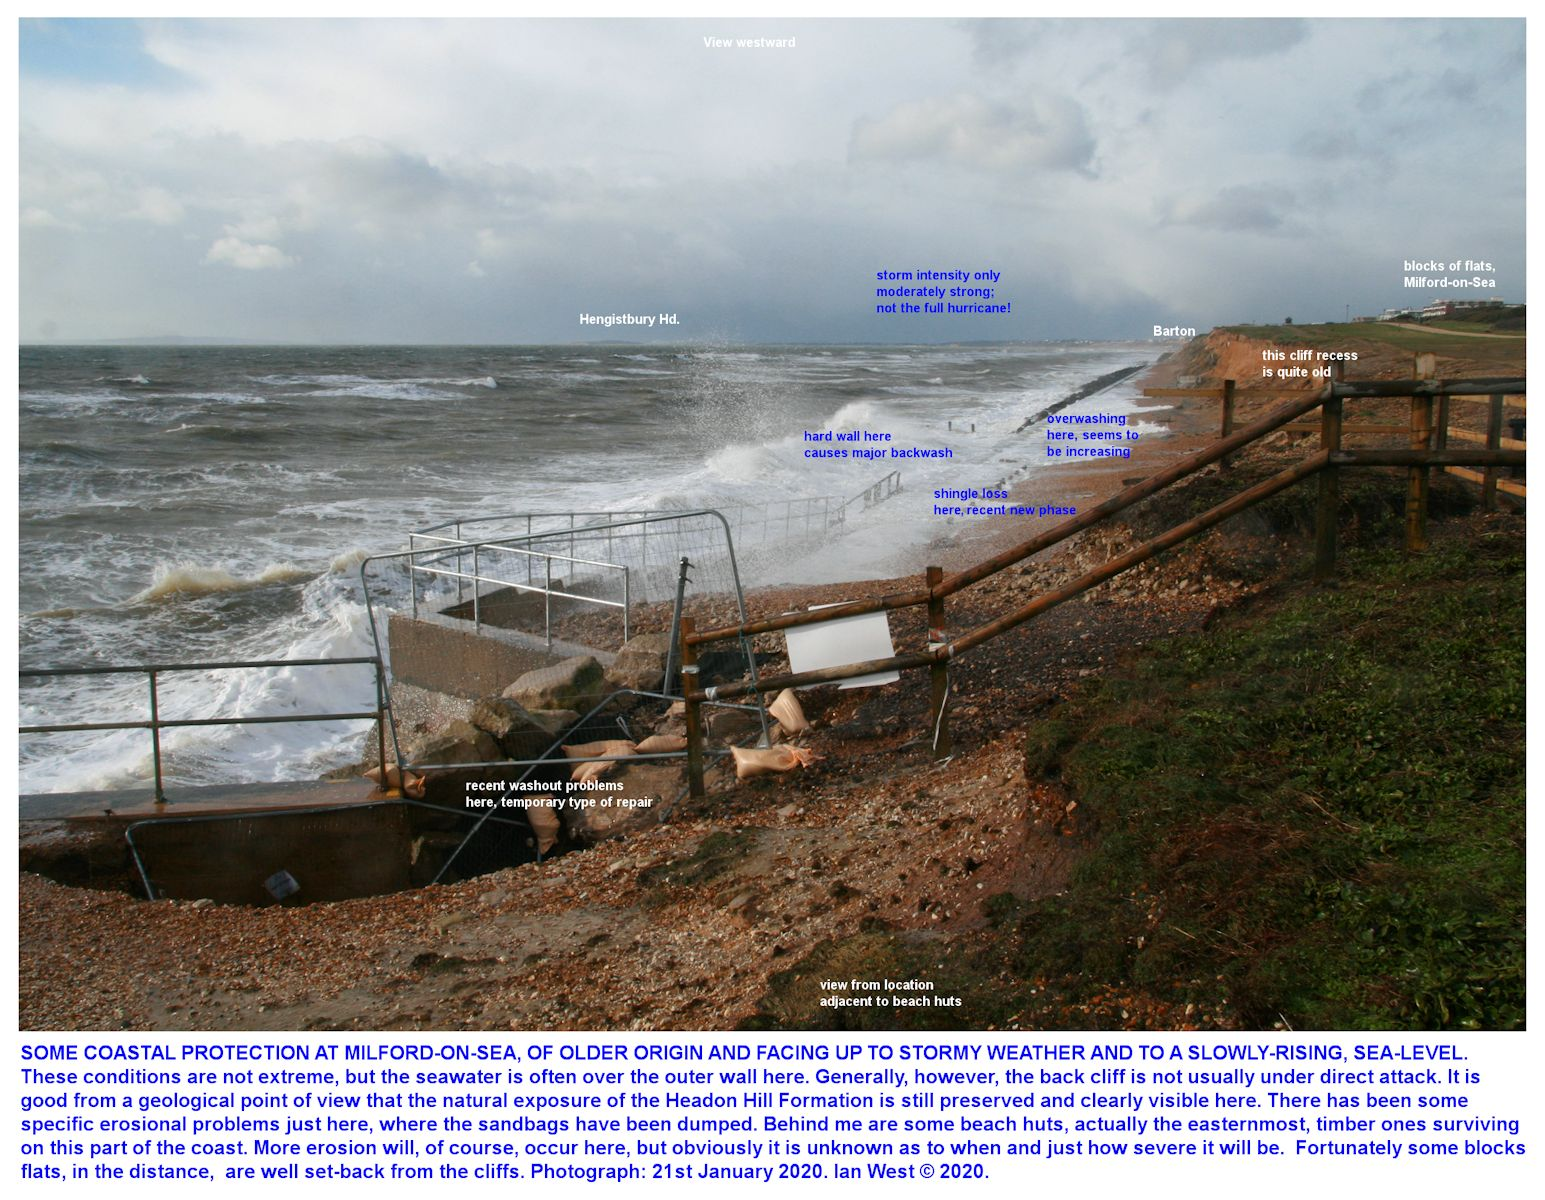 A westward view of the coast from the beach huts just west of the White House, Milford-on-Sea, in fairly stormy conditions, 2nd February 2020, Ian West